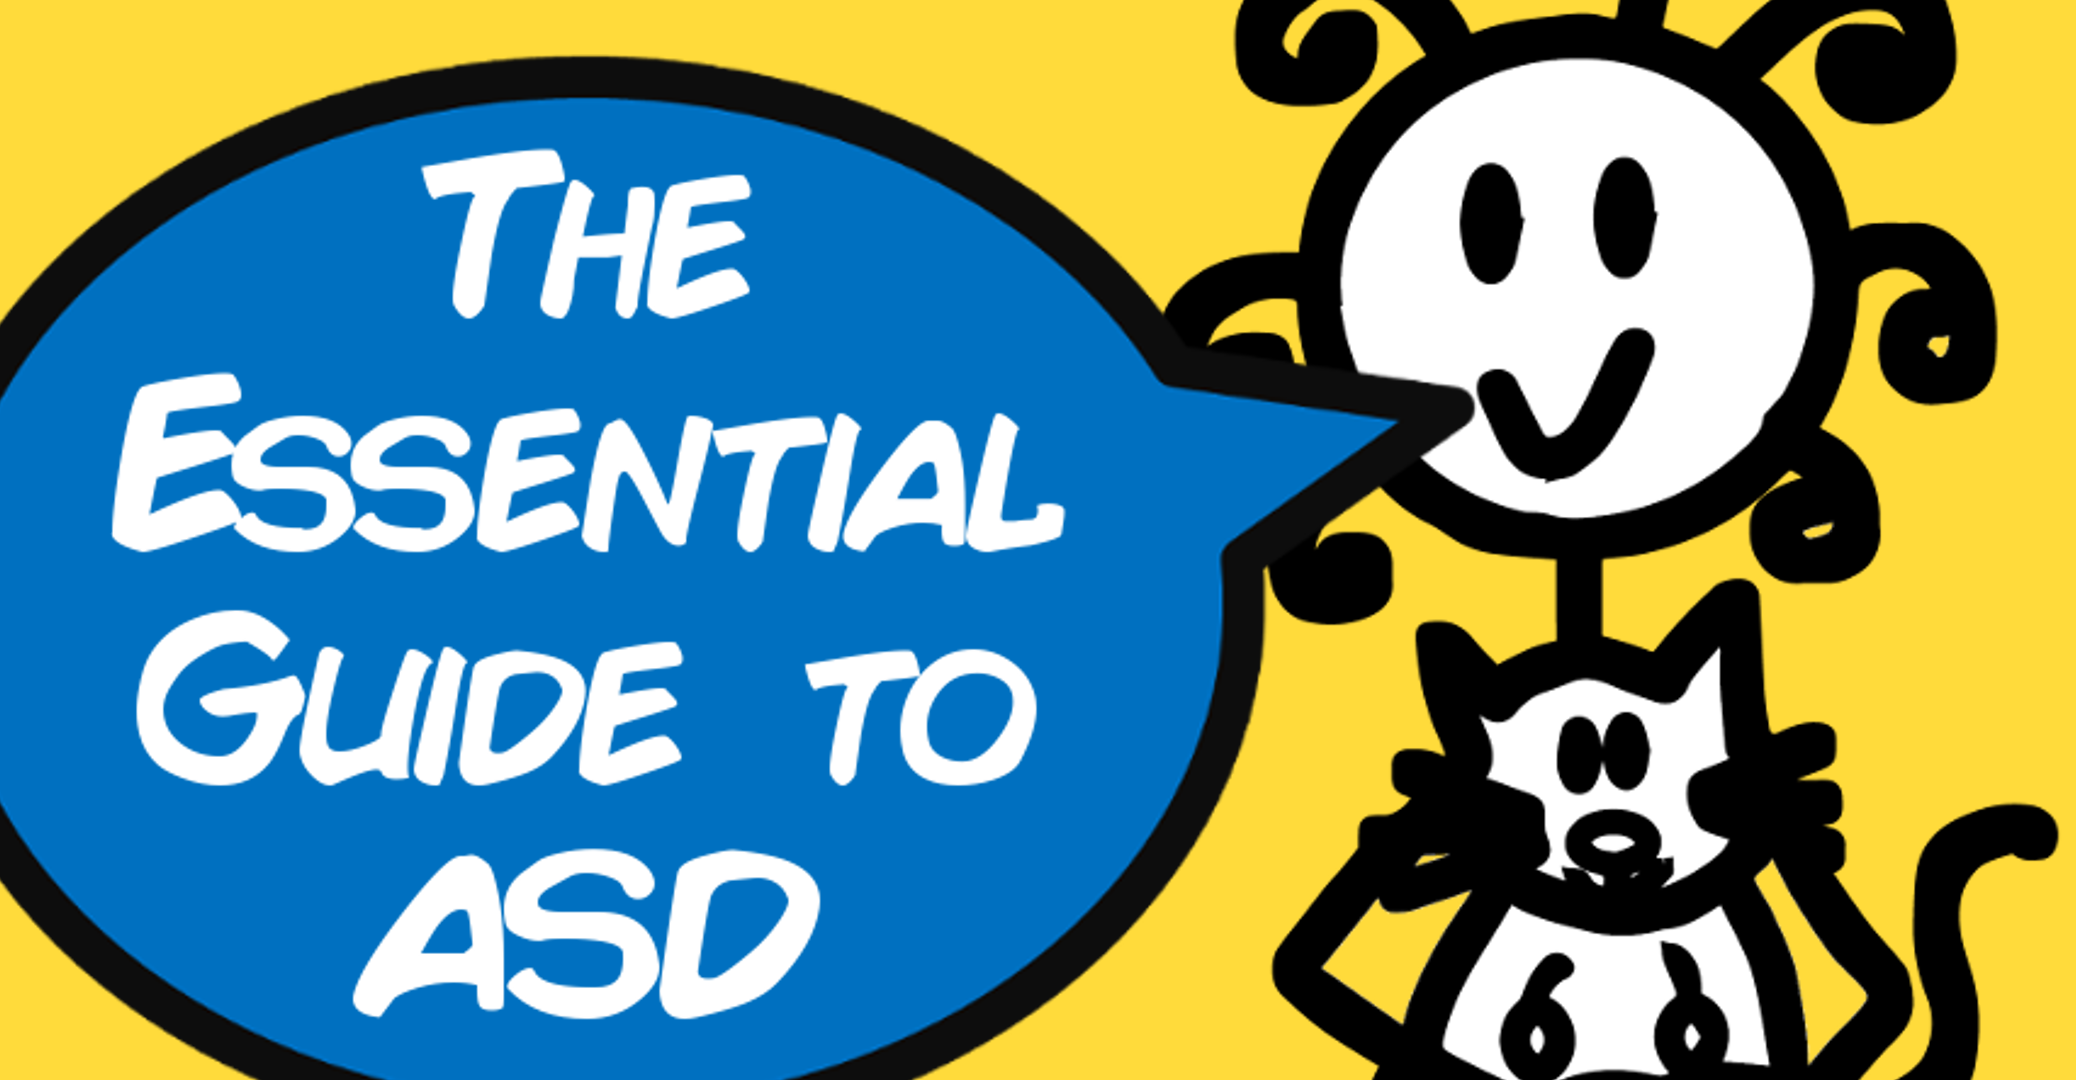 The Essential Guide to ASD - The Curly Hair P